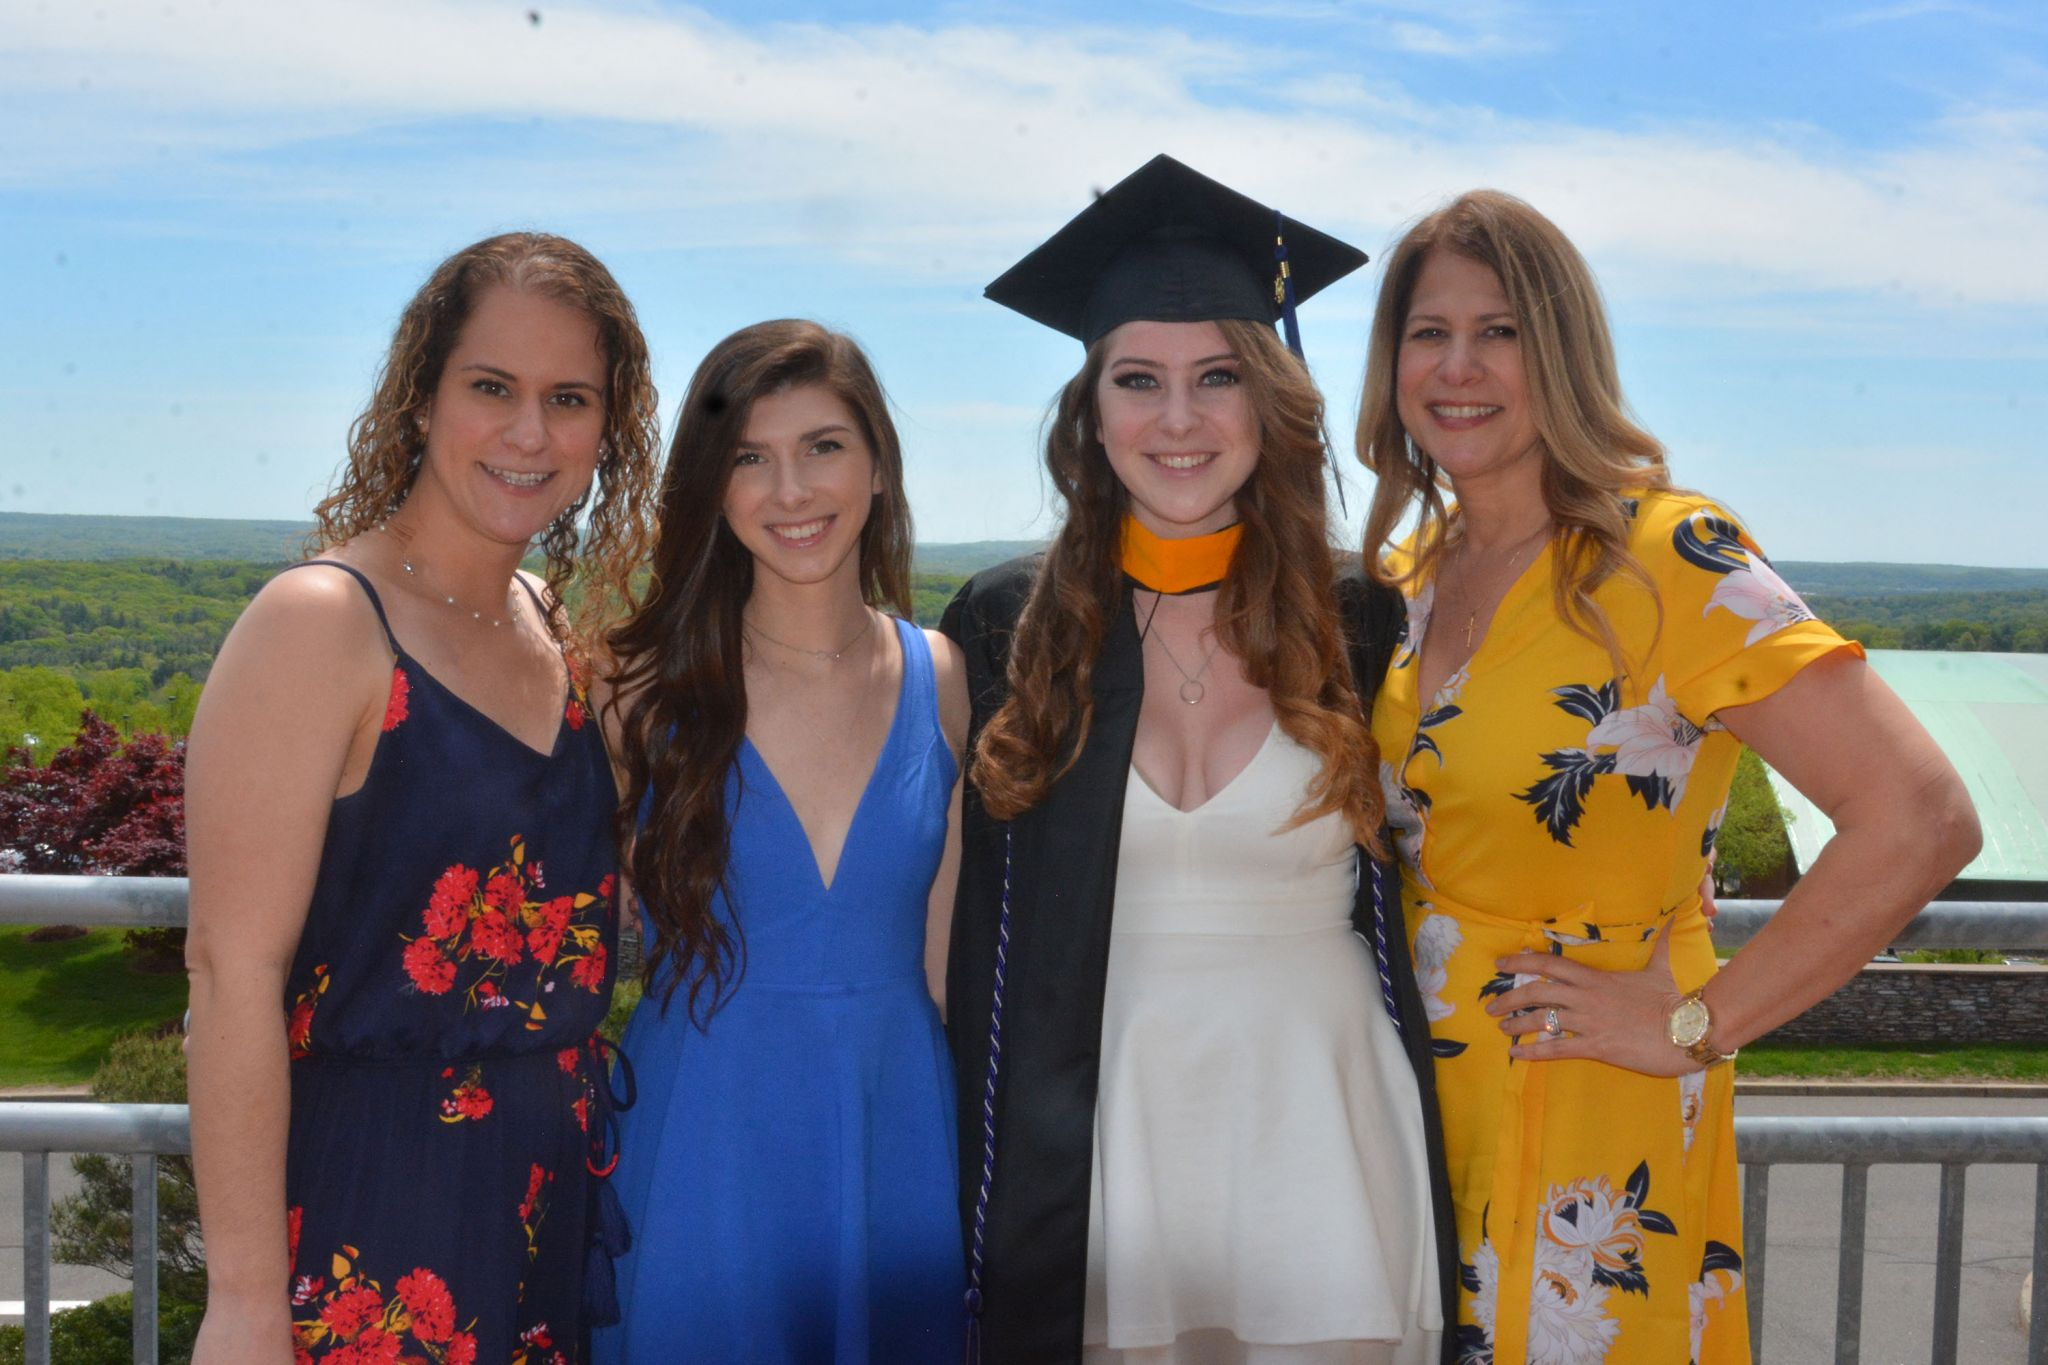 Photos: Quinnipiac University Health, Science and Nursing Undergraduate Graduation